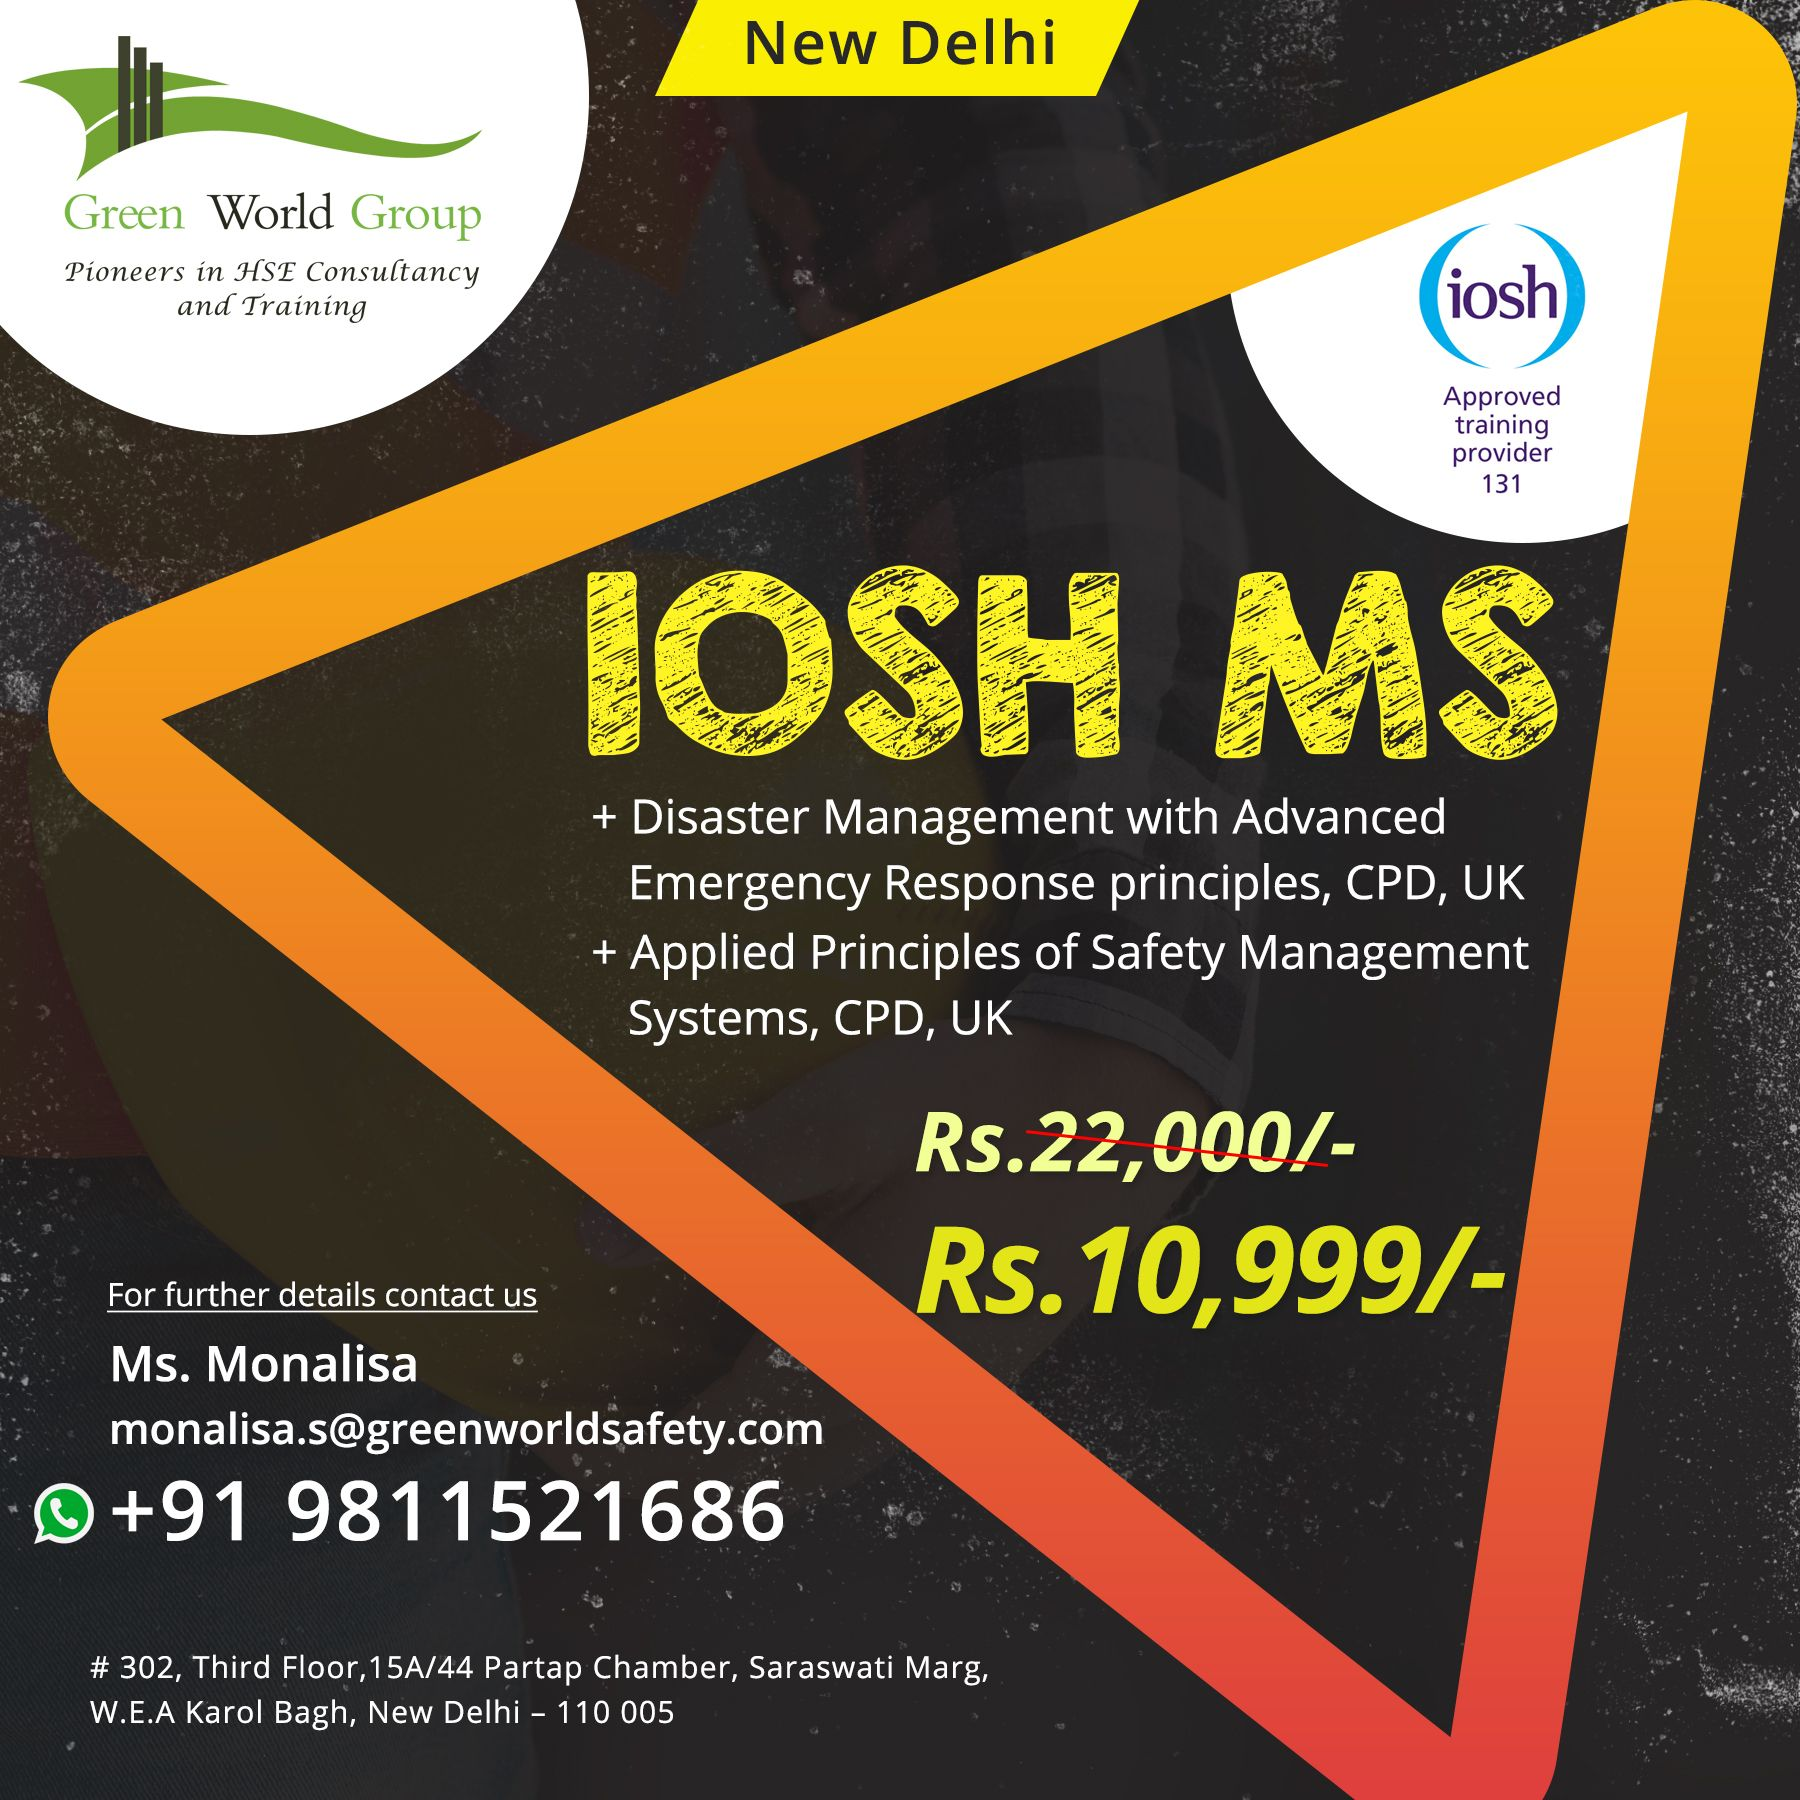 Green World Group provides an exclusive offer for the IOSH